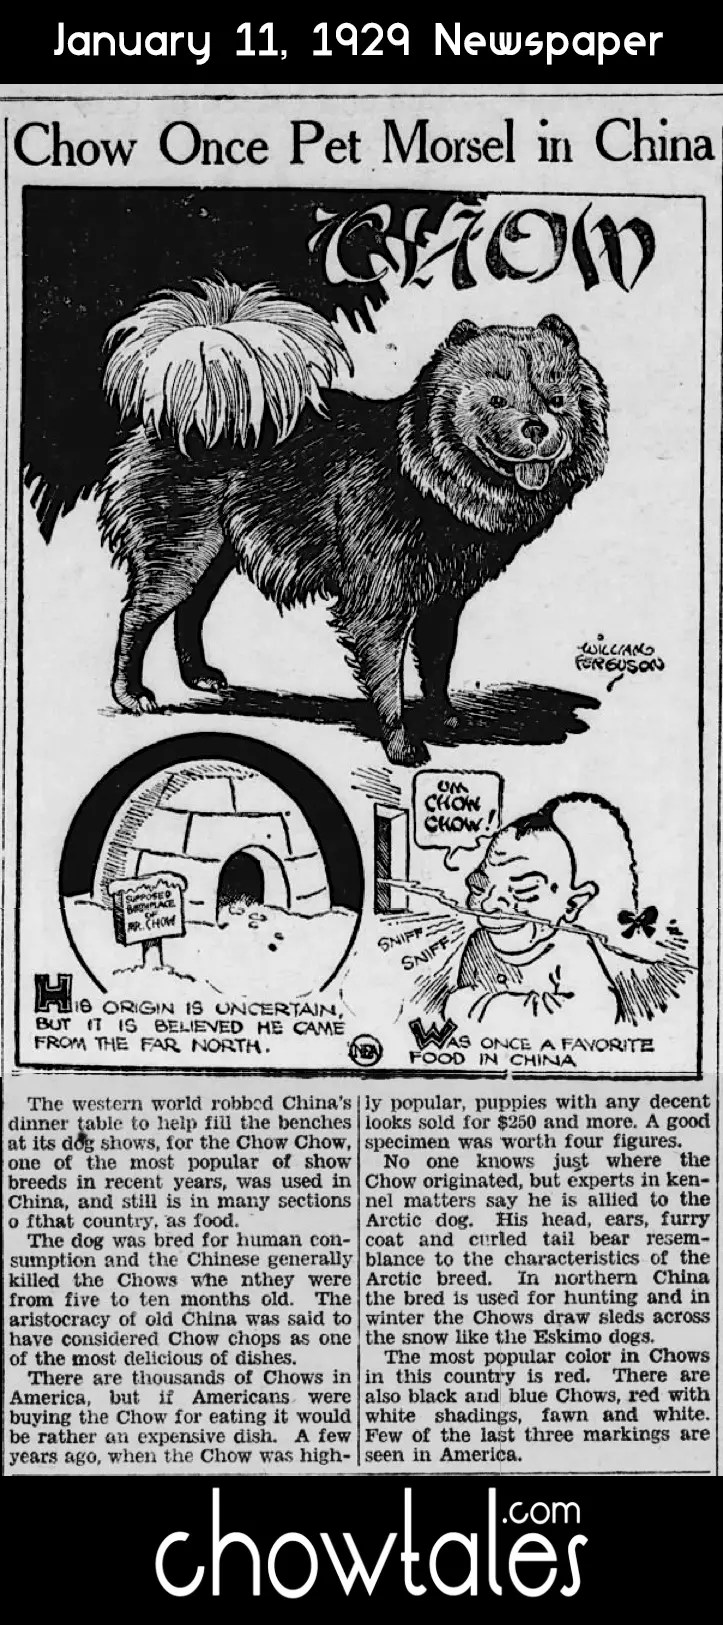 1929 PET MORSEL CHINA ARTICLE